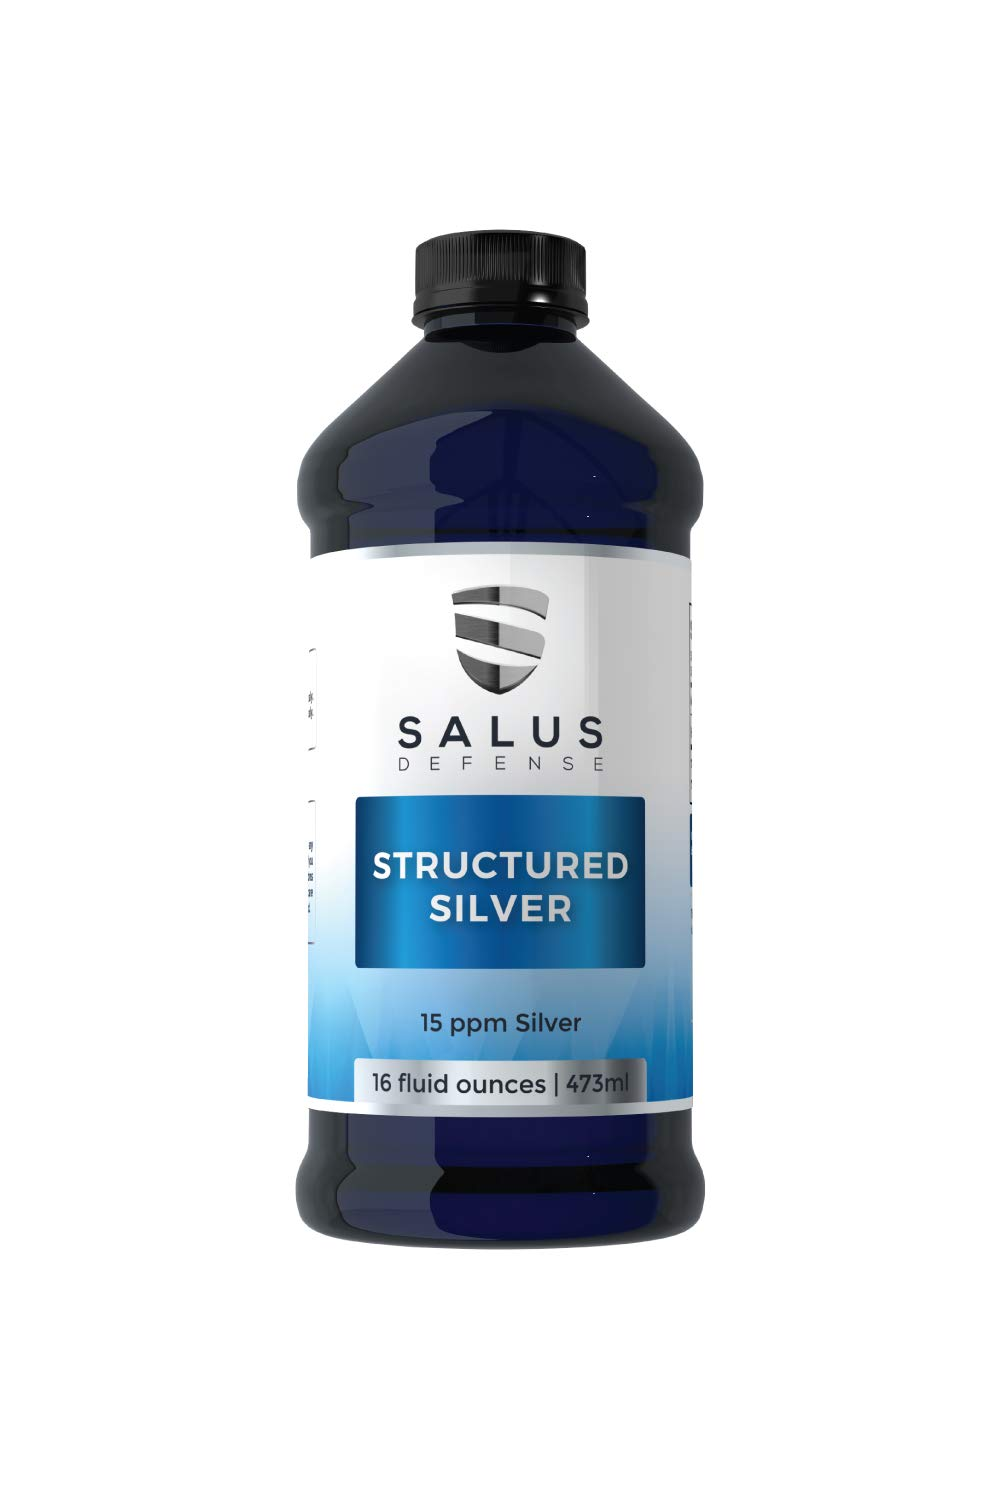 Salus Defense Structured Silver Liquid - Alkaline Water With 15ppm Structured Silver To Quickly Promote Health Gut Bacteria - All Natural and Safe With No Additives - 16 Ounces by Salus Defense